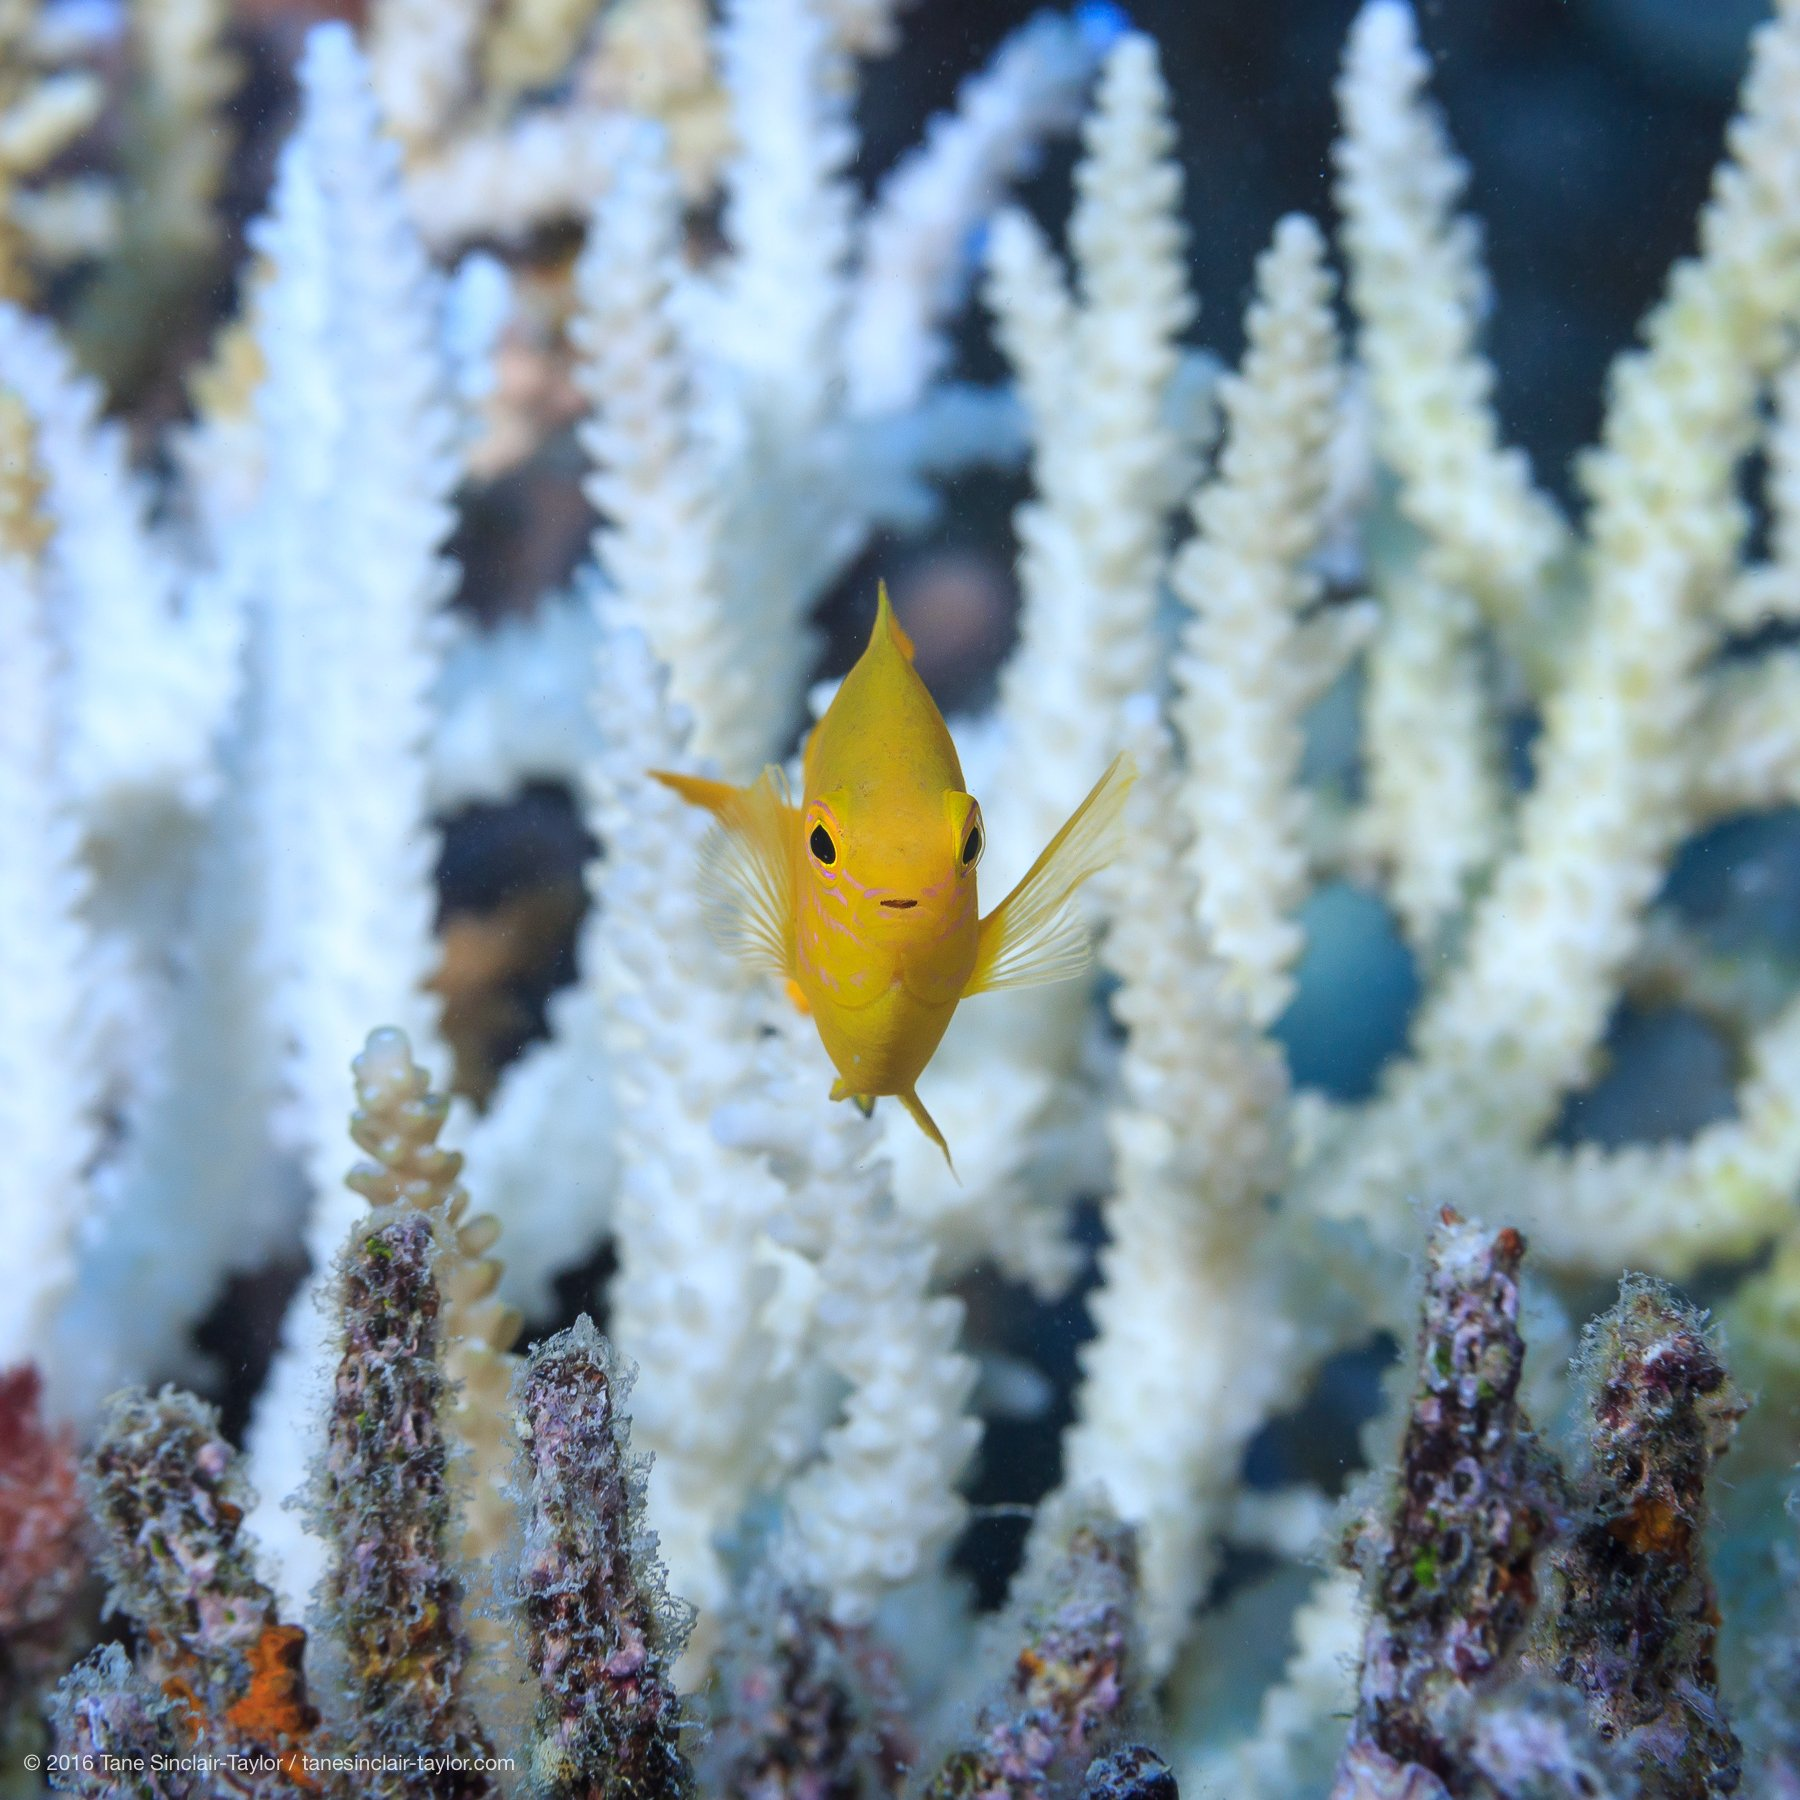 COMING UP we take a close look at coral reefs in the future. More info: https://t.co/7bdNiyH4L0 #CORAL17 #Canberra Pic: Tane Sinclair-Taylor https://t.co/O64la0seya